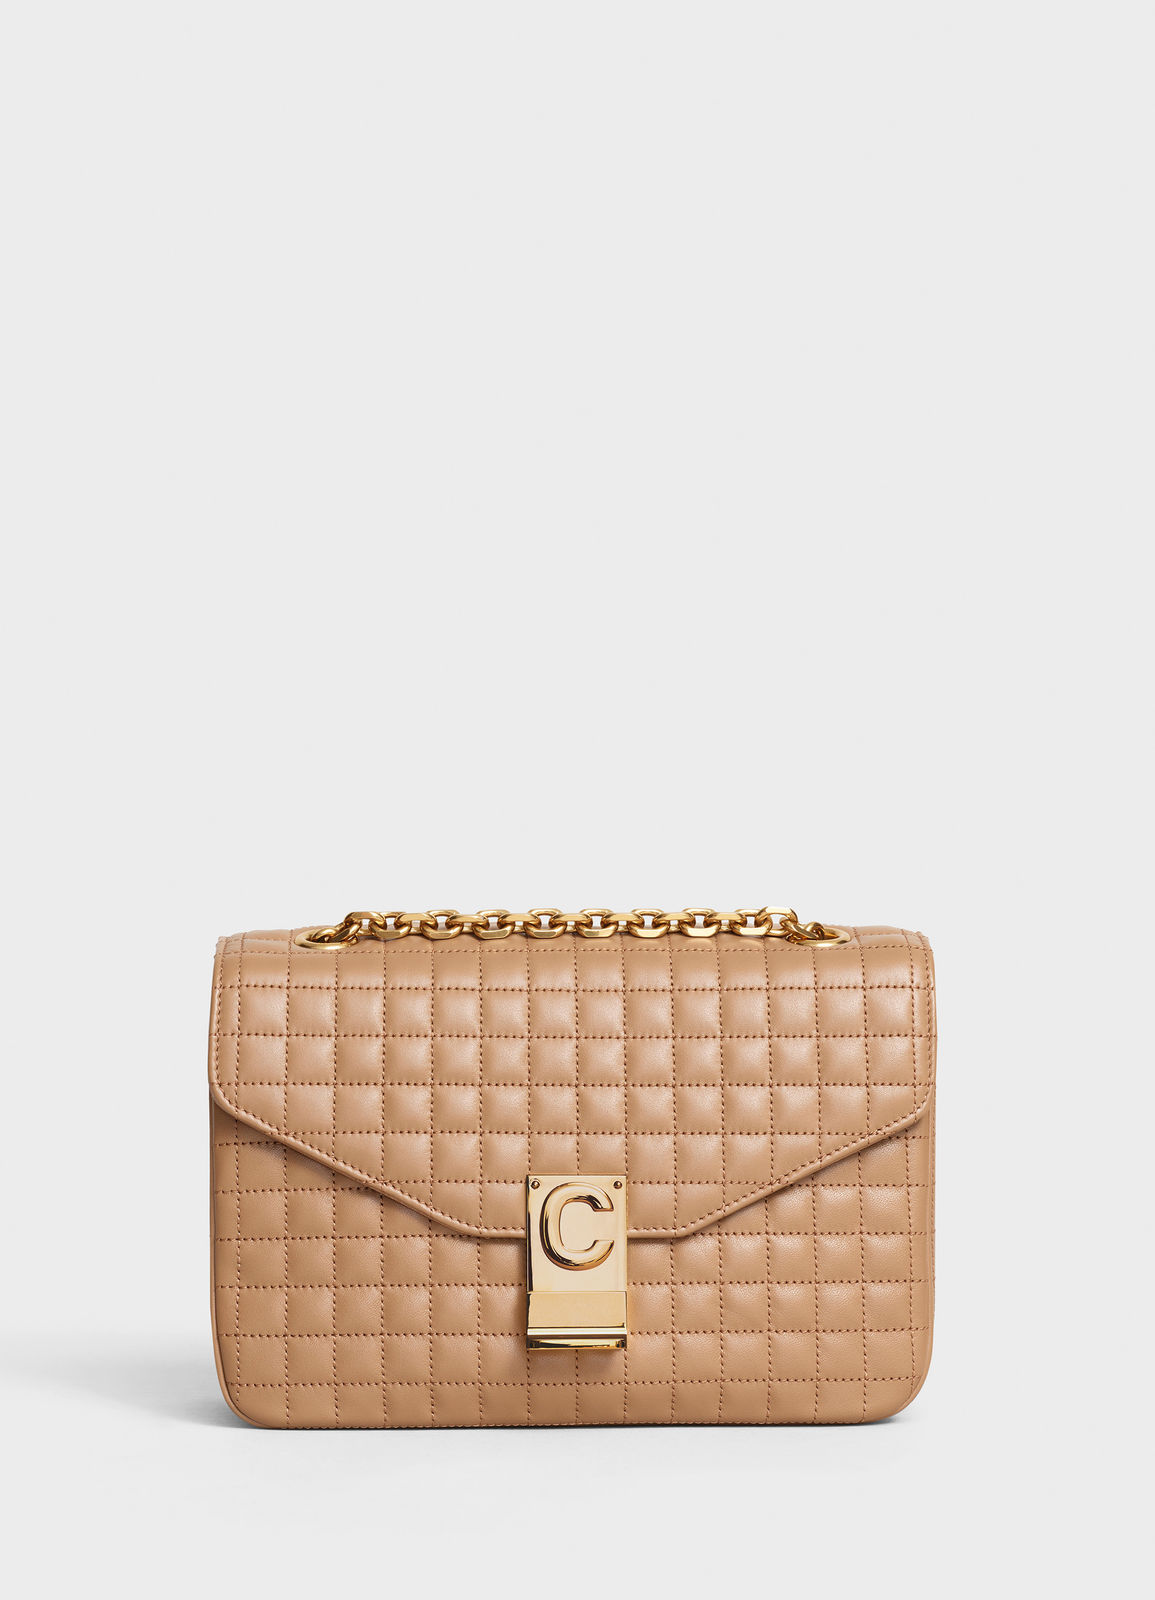 CELINE MEDIUM C BAG IN BICOLOUR QUILTED CALFSKIN CL87253 Camel